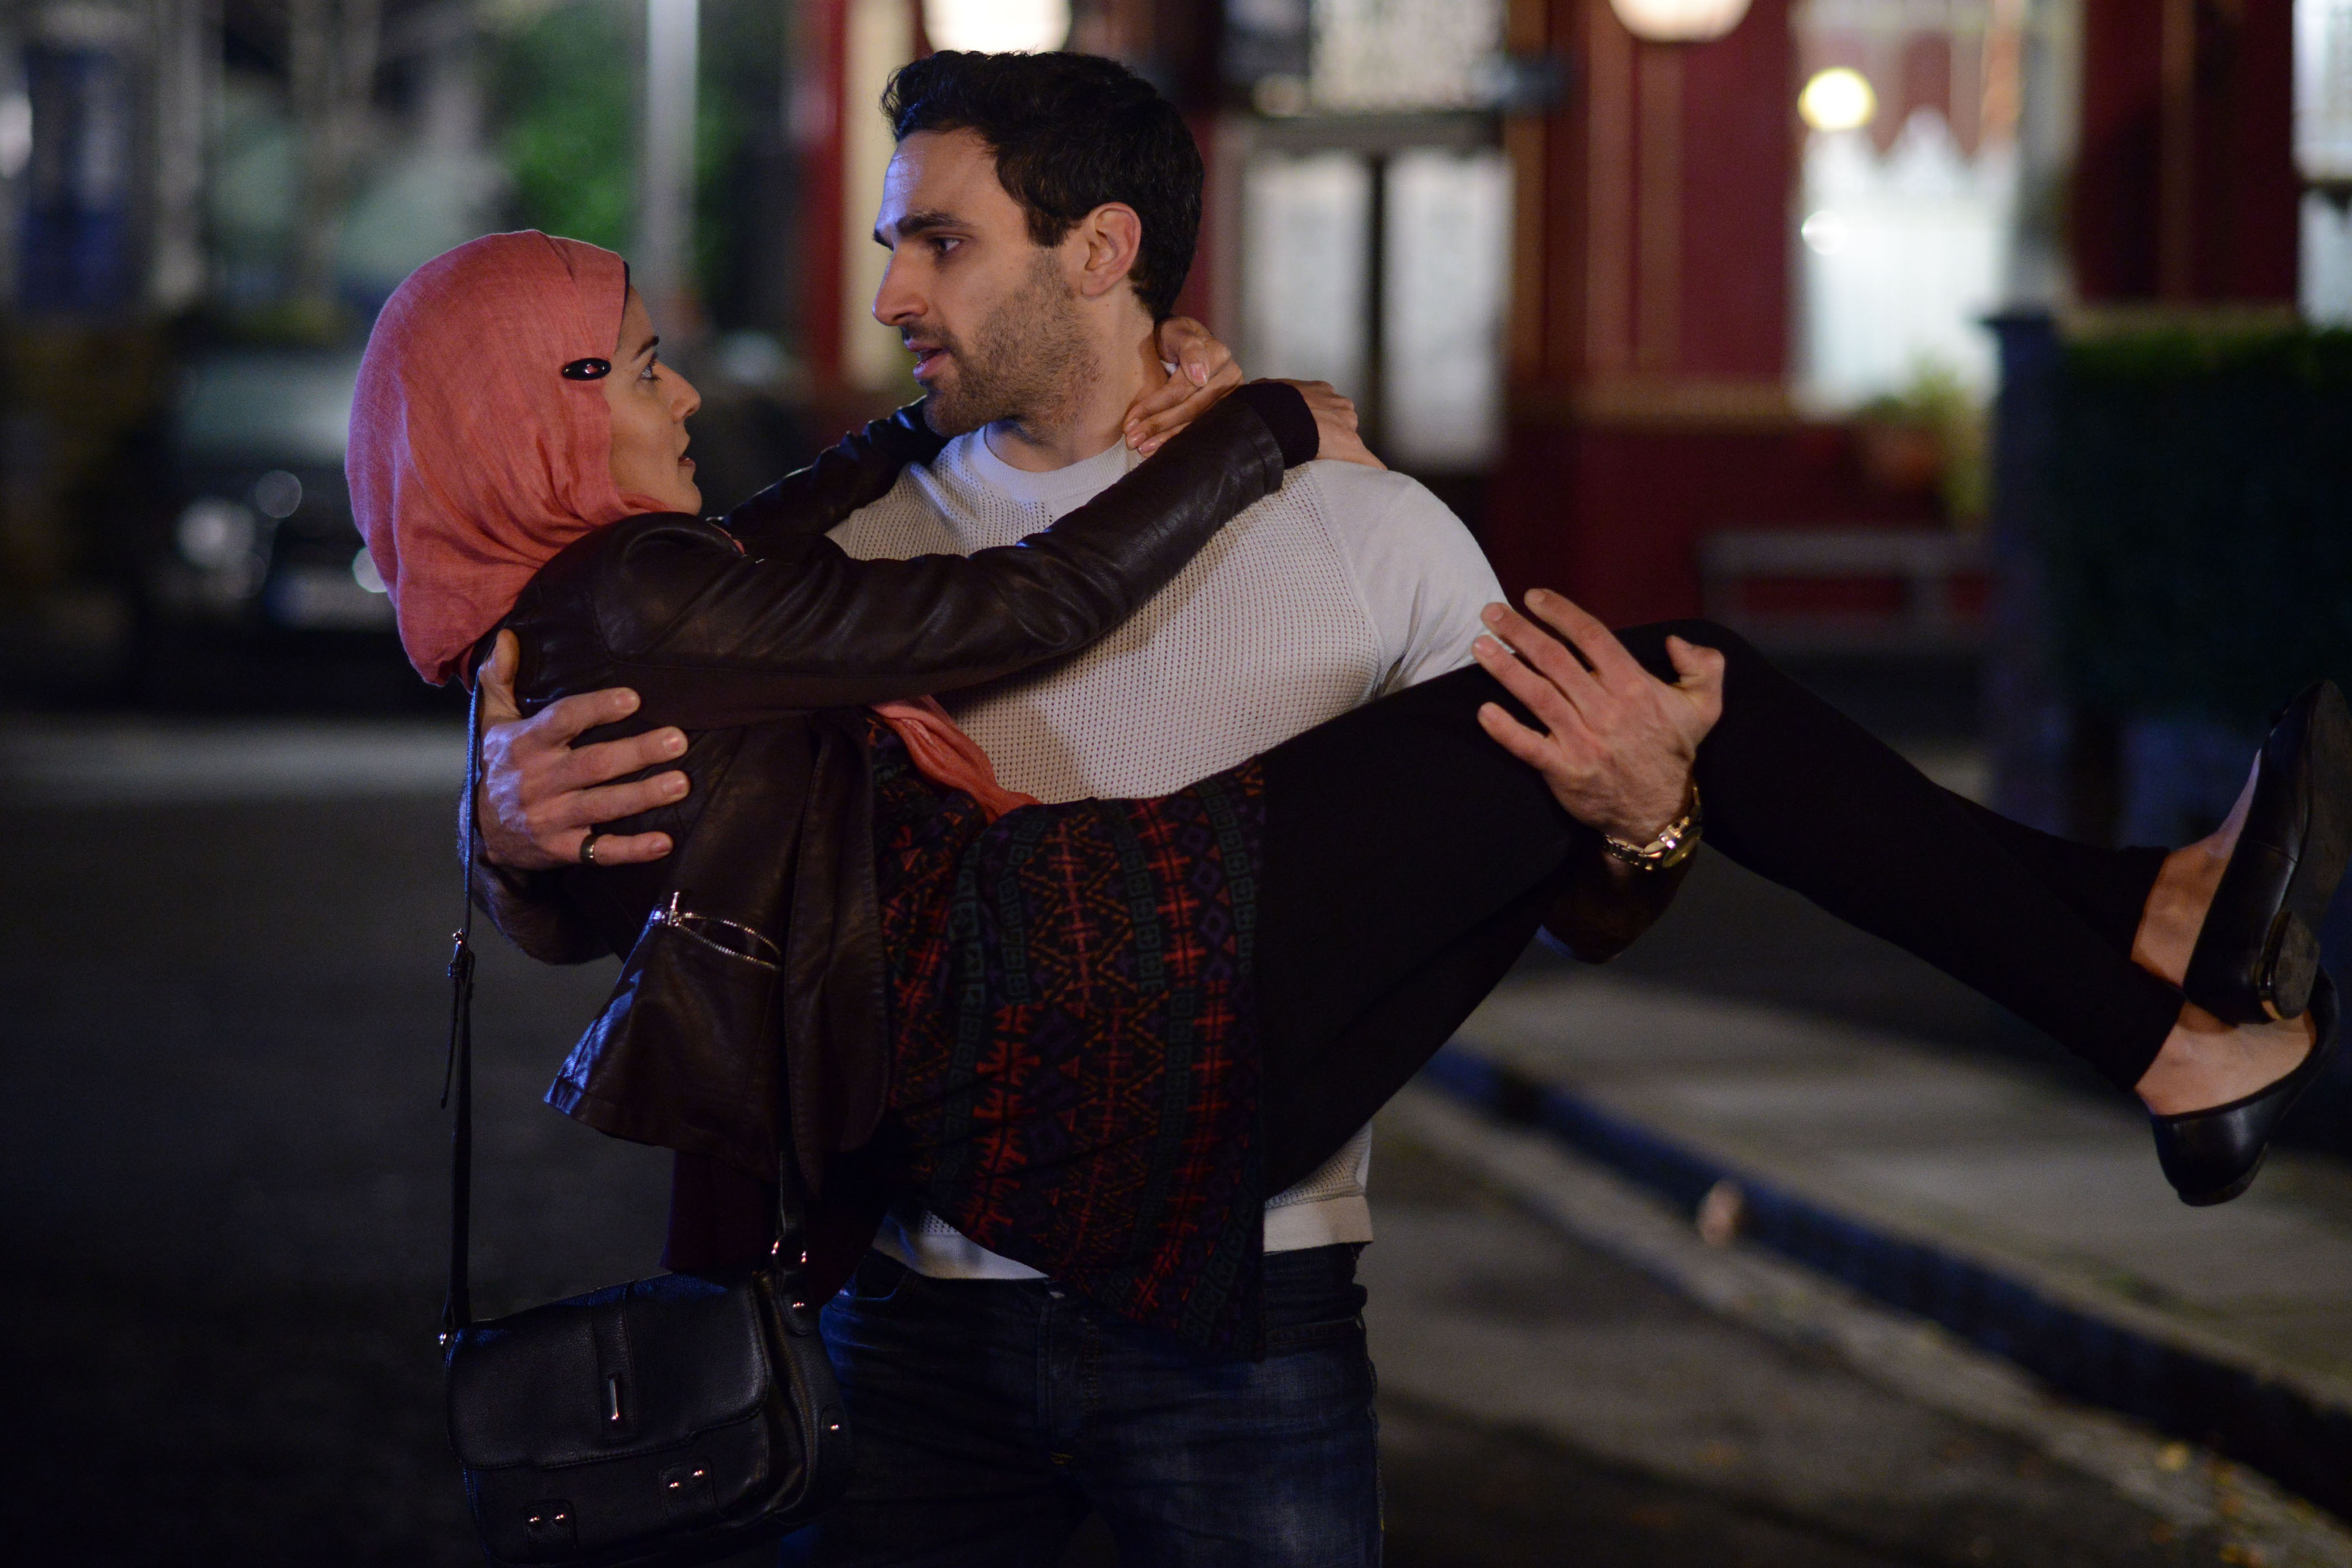 EastEnders spoilers: Shabnam has FINALLY given in to Kush – so what's next for Walford's newest lovebirds?